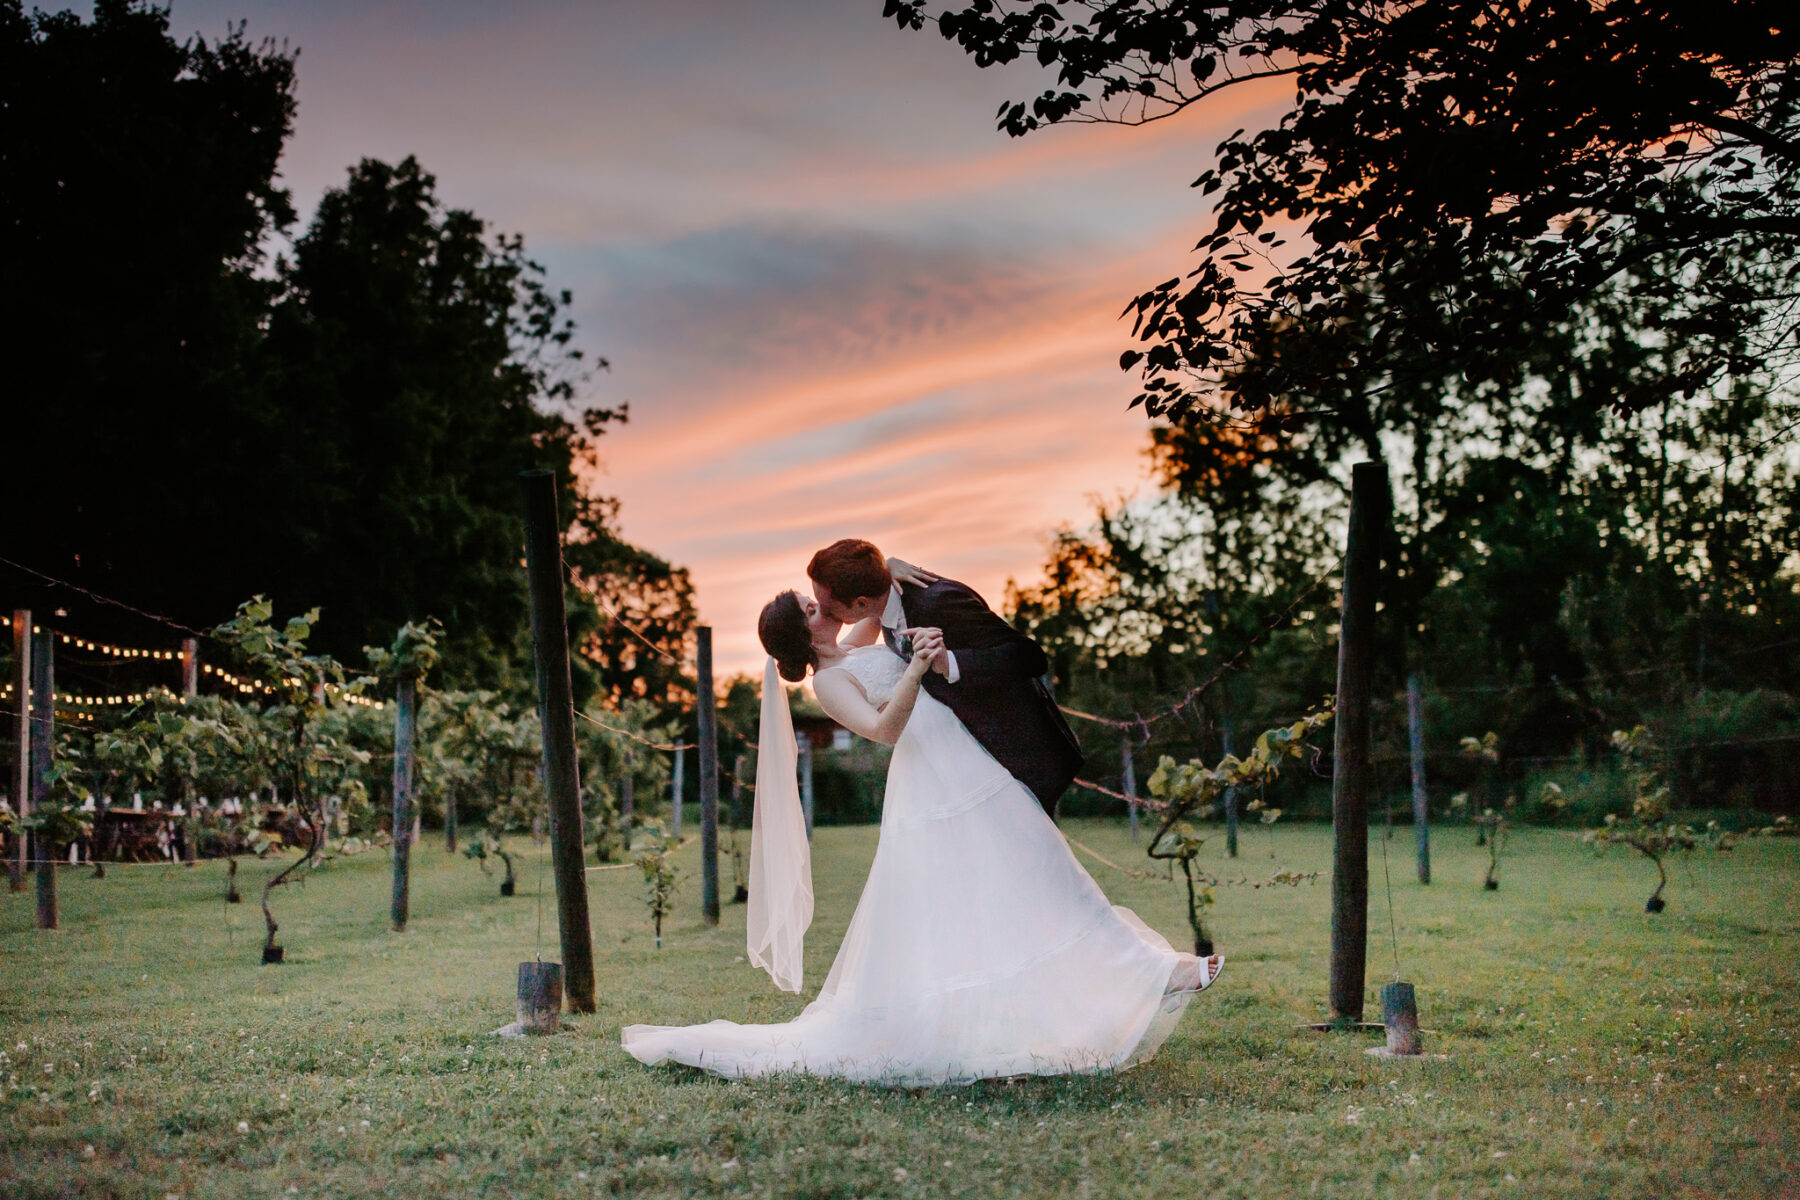 Sunset wedding photos: Vibrant Summer Wedding at Sinking Creek Farm featured on Nashville Bride Guide